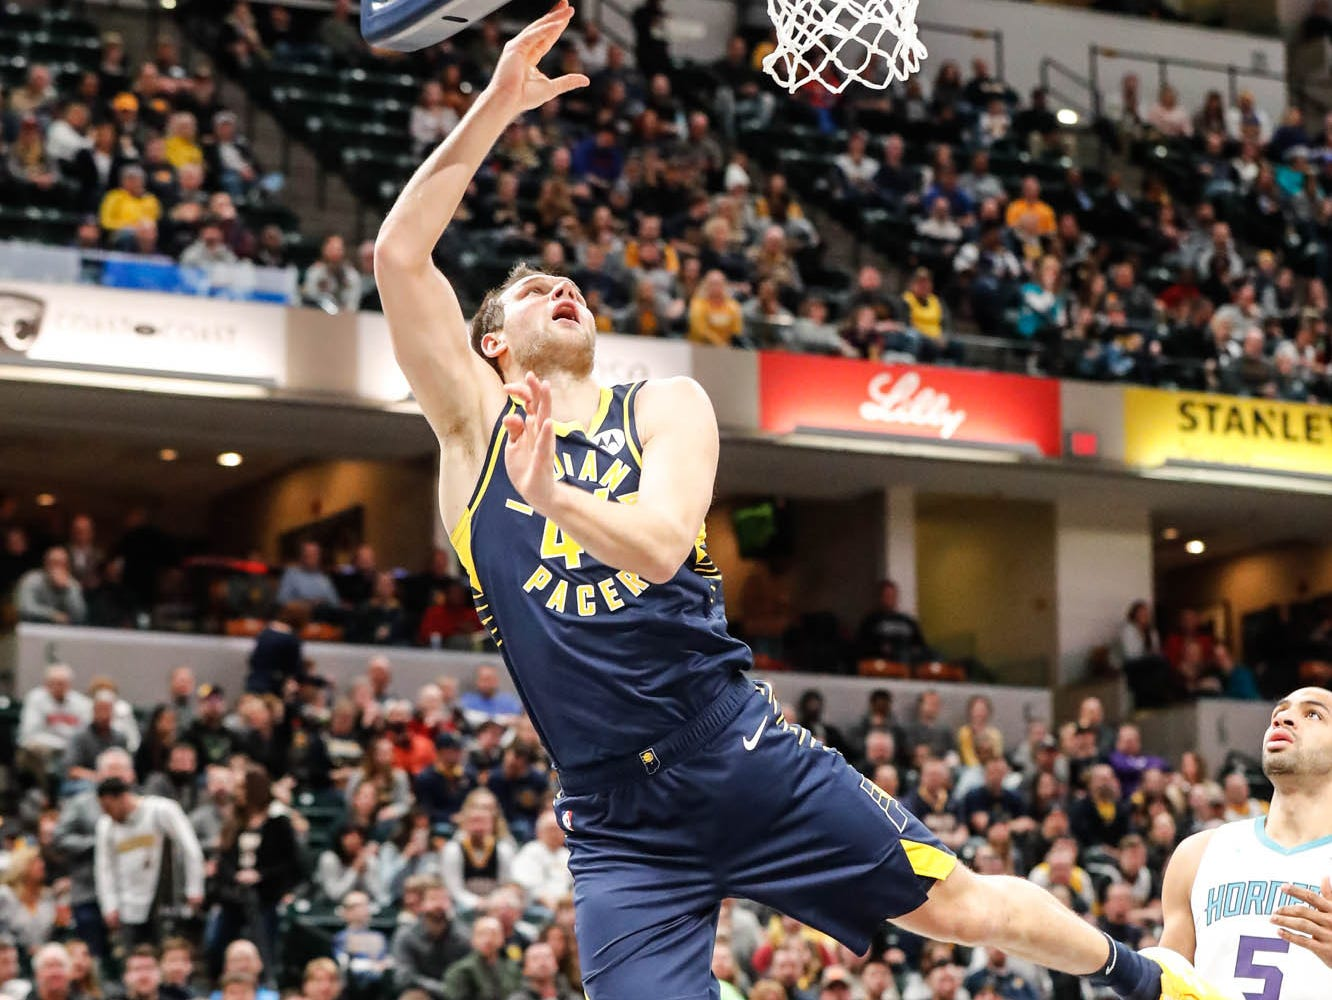 Indiana Pacers forward Bojan Bogdanovic (44), shoots a layup during a game between the Pacers and Hornets at Bankers Life Fieldhouse on Sunday, Jan. 20, 2019.